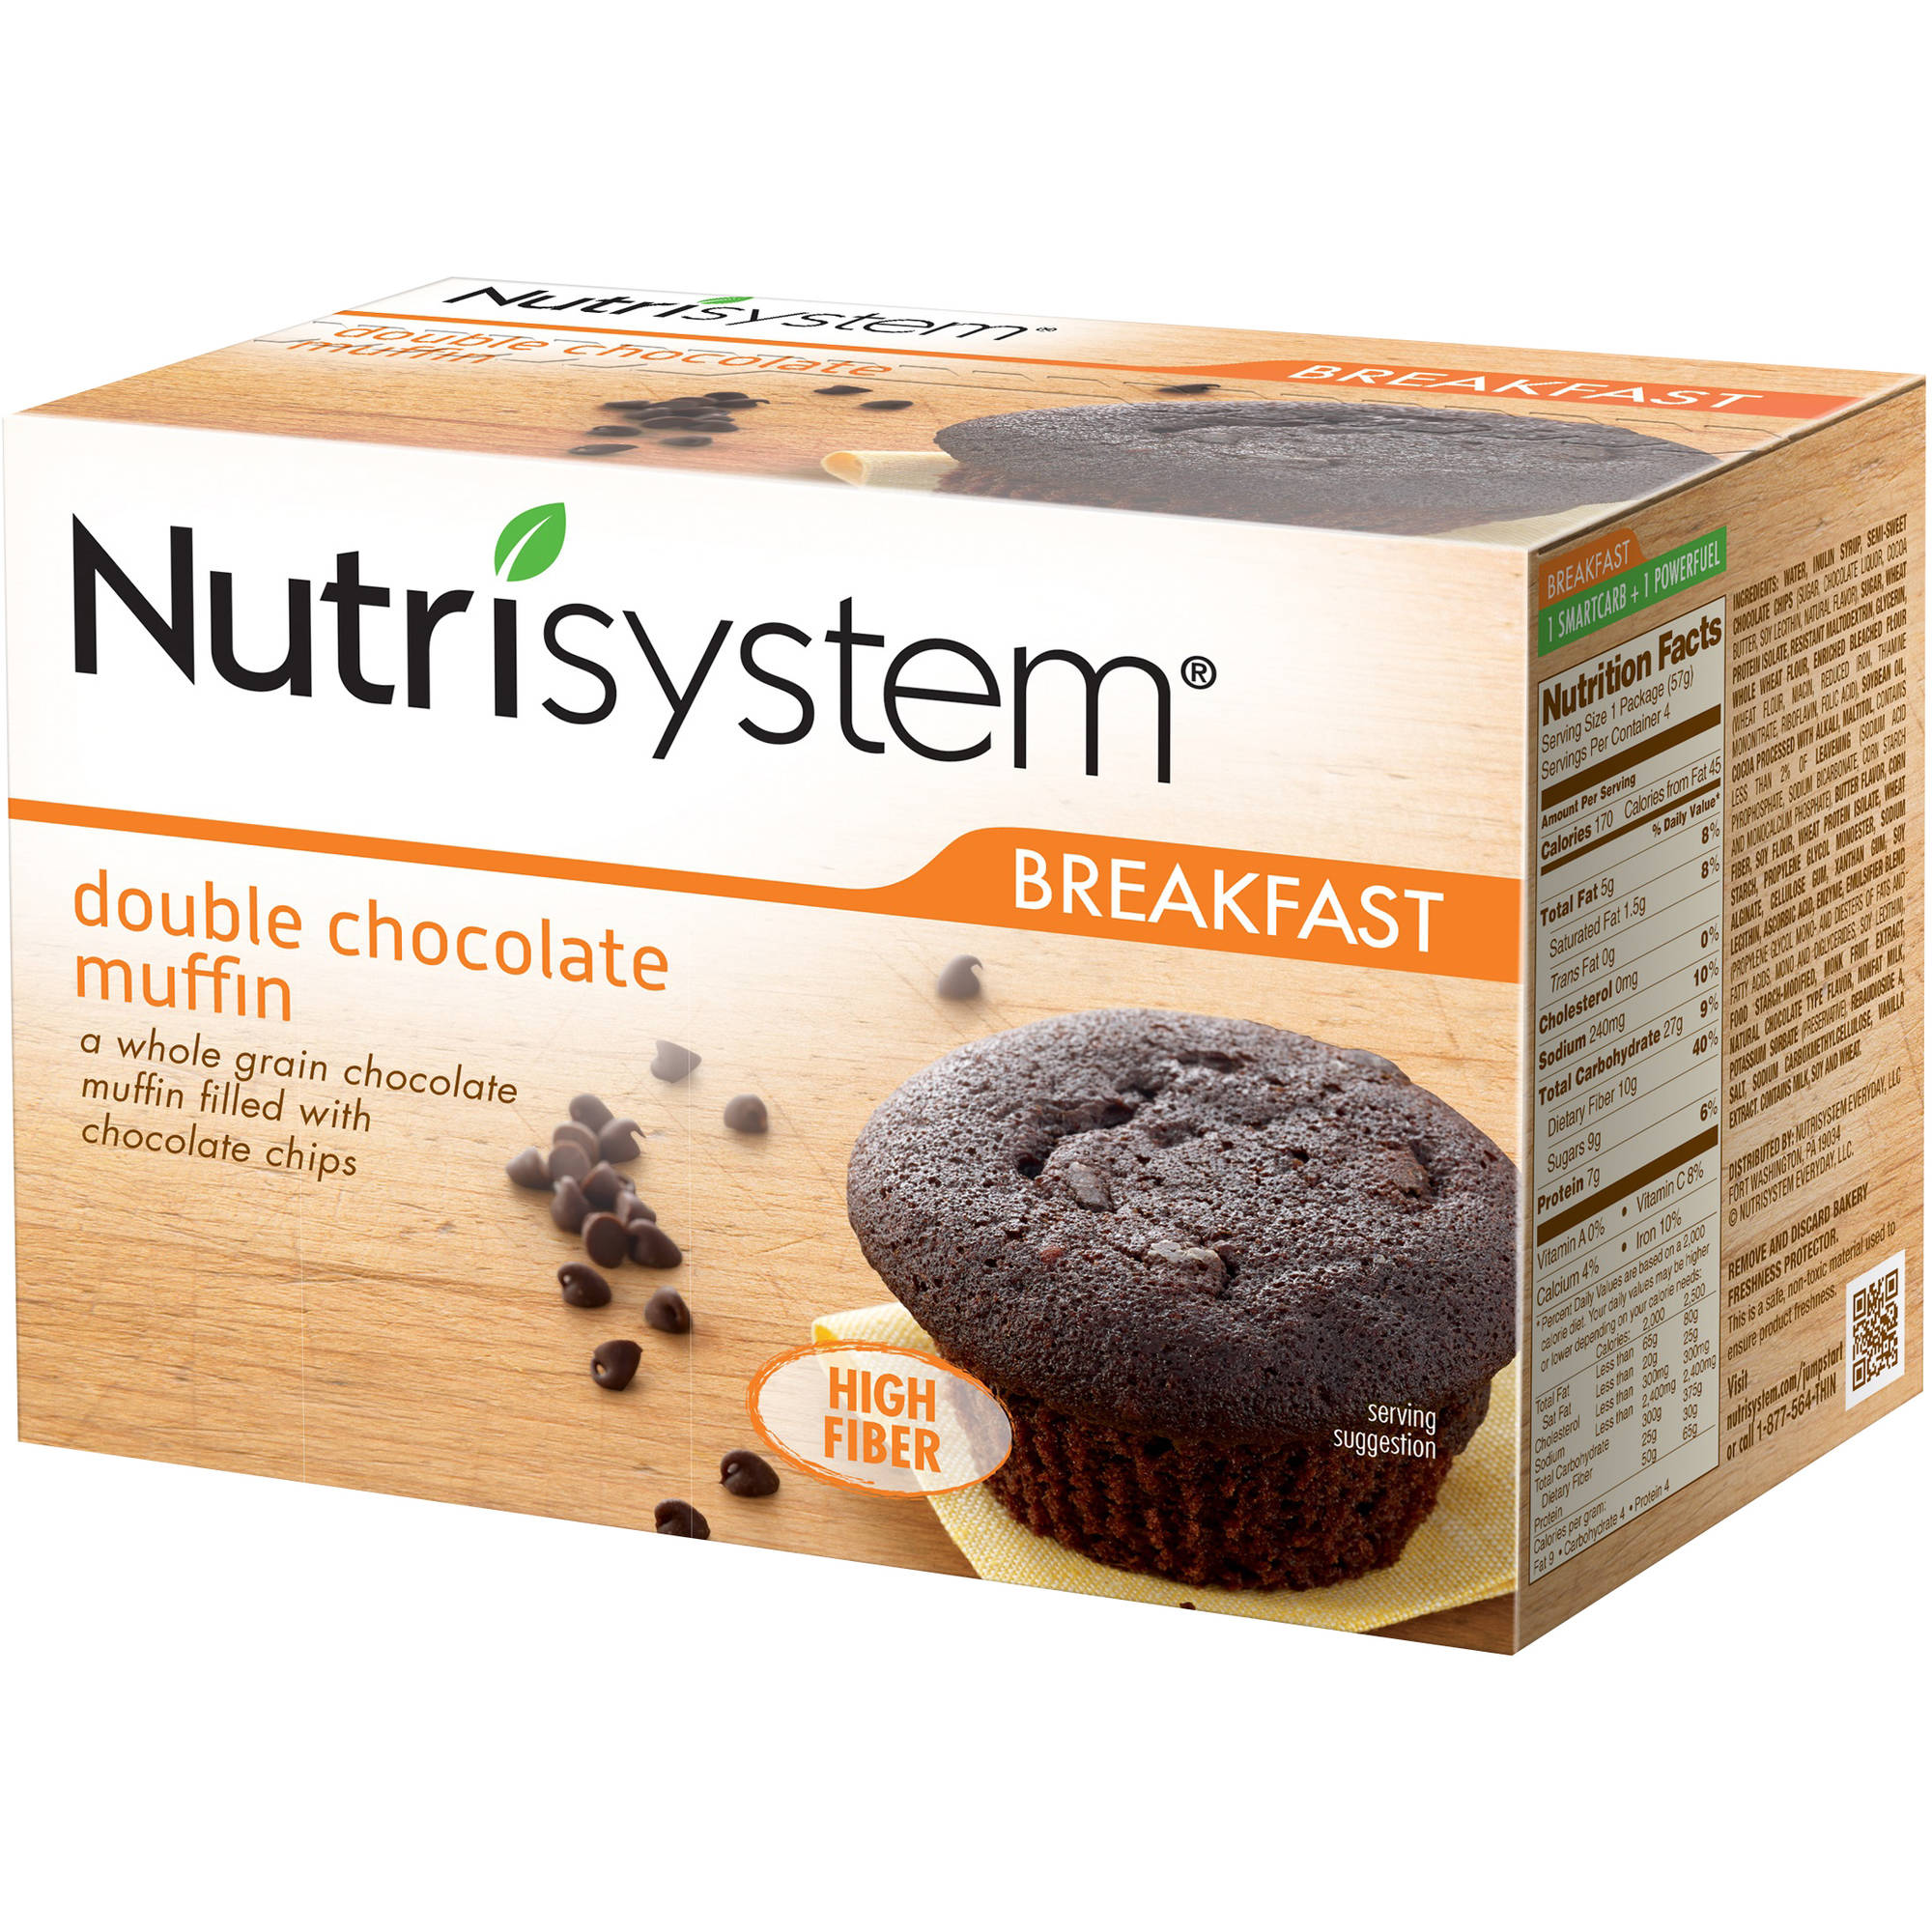 Nutrisystem Double Chocolate Muffins, 2 oz, 4 count